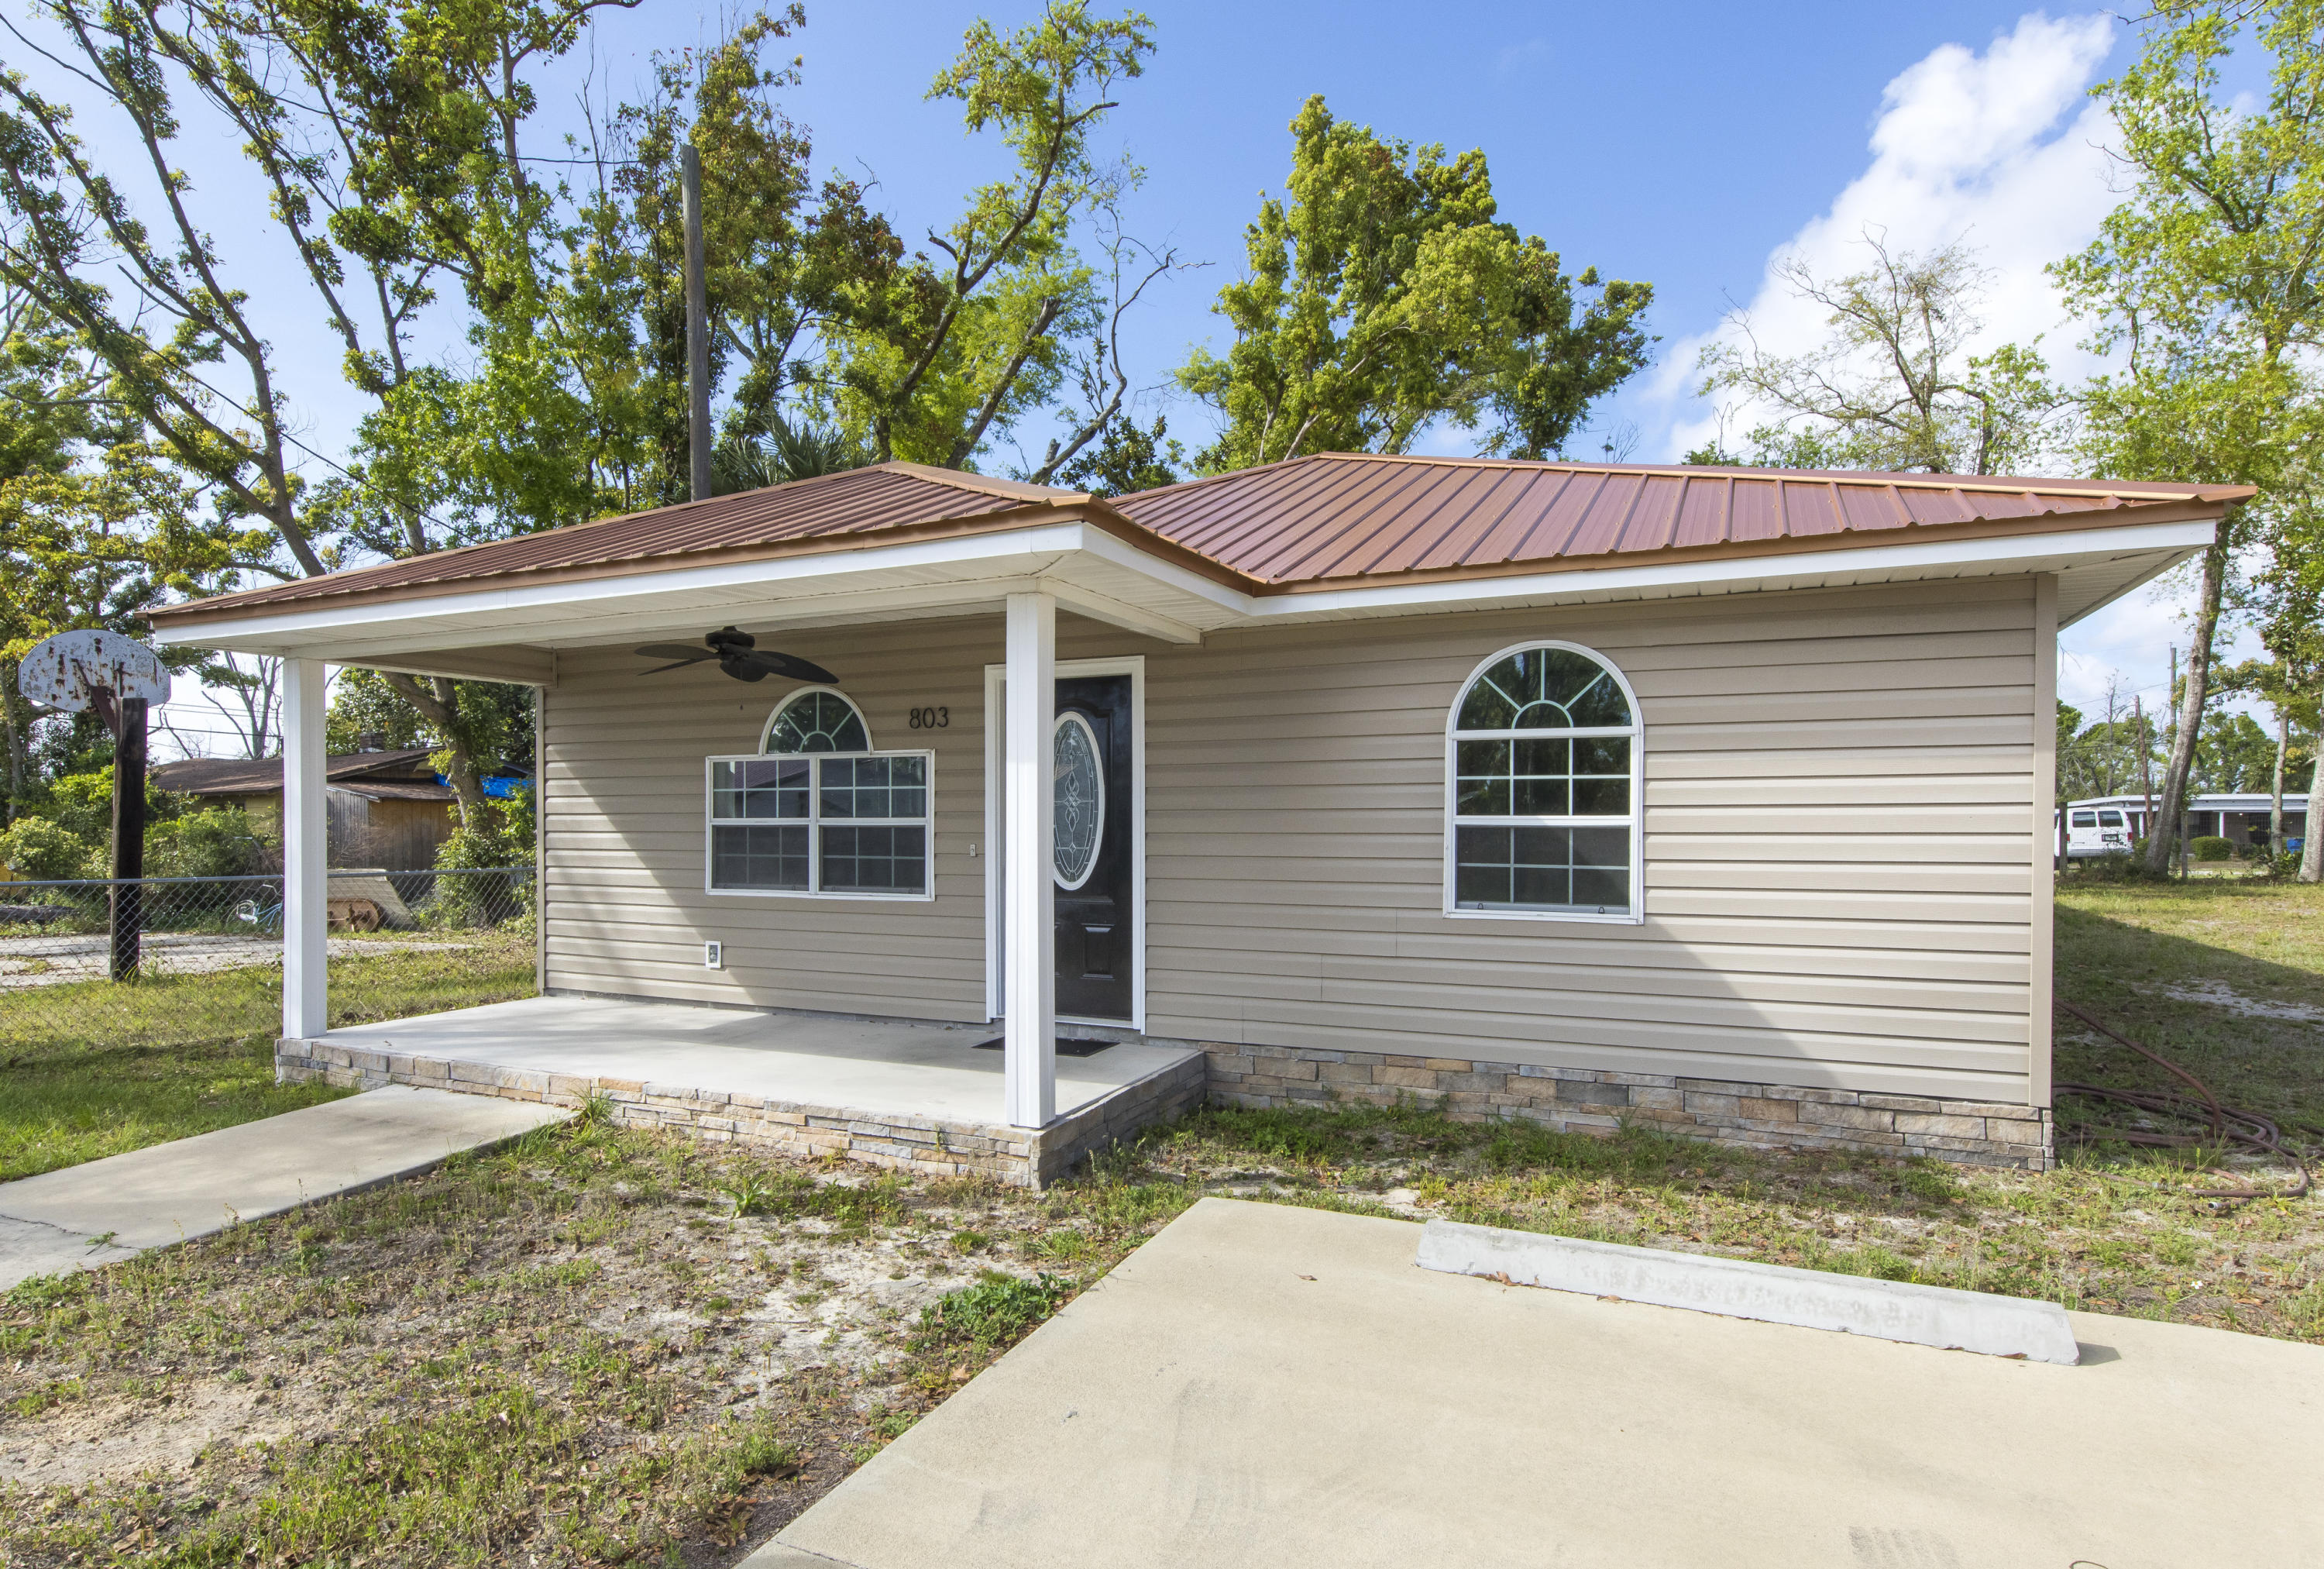 803 E 12th Street, Panama City, FL 32401